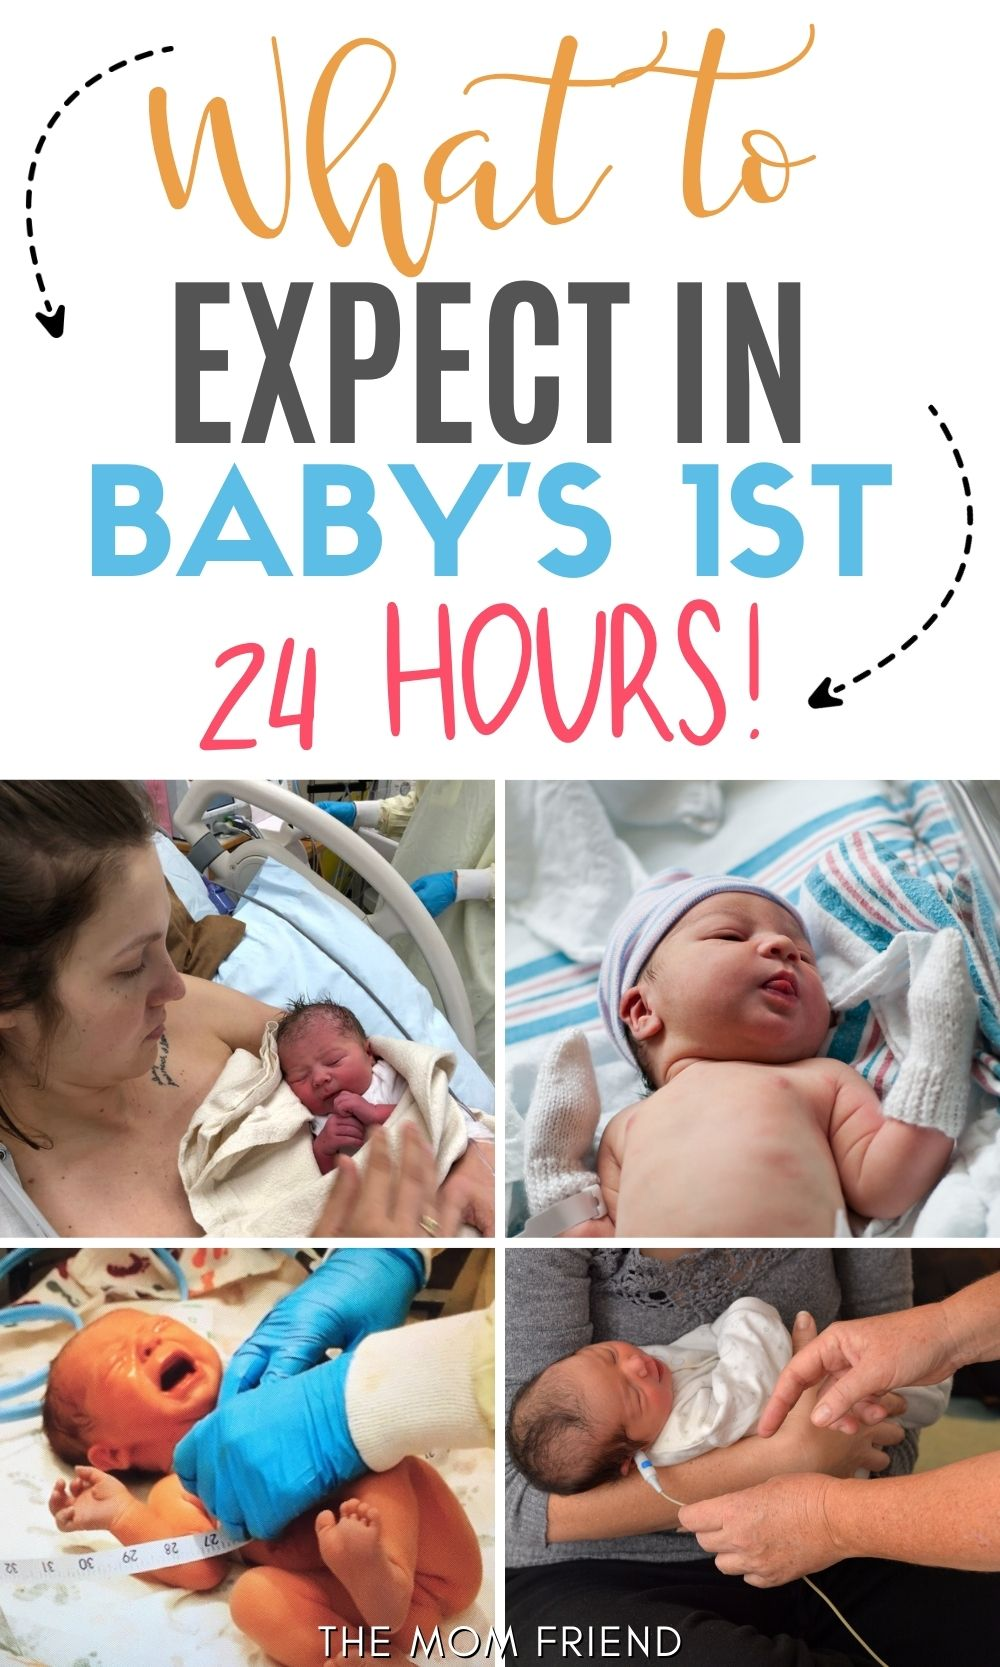 """Pinterest graphic with text for """"What to Expect in Baby's First 24 hours"""" and image collage."""